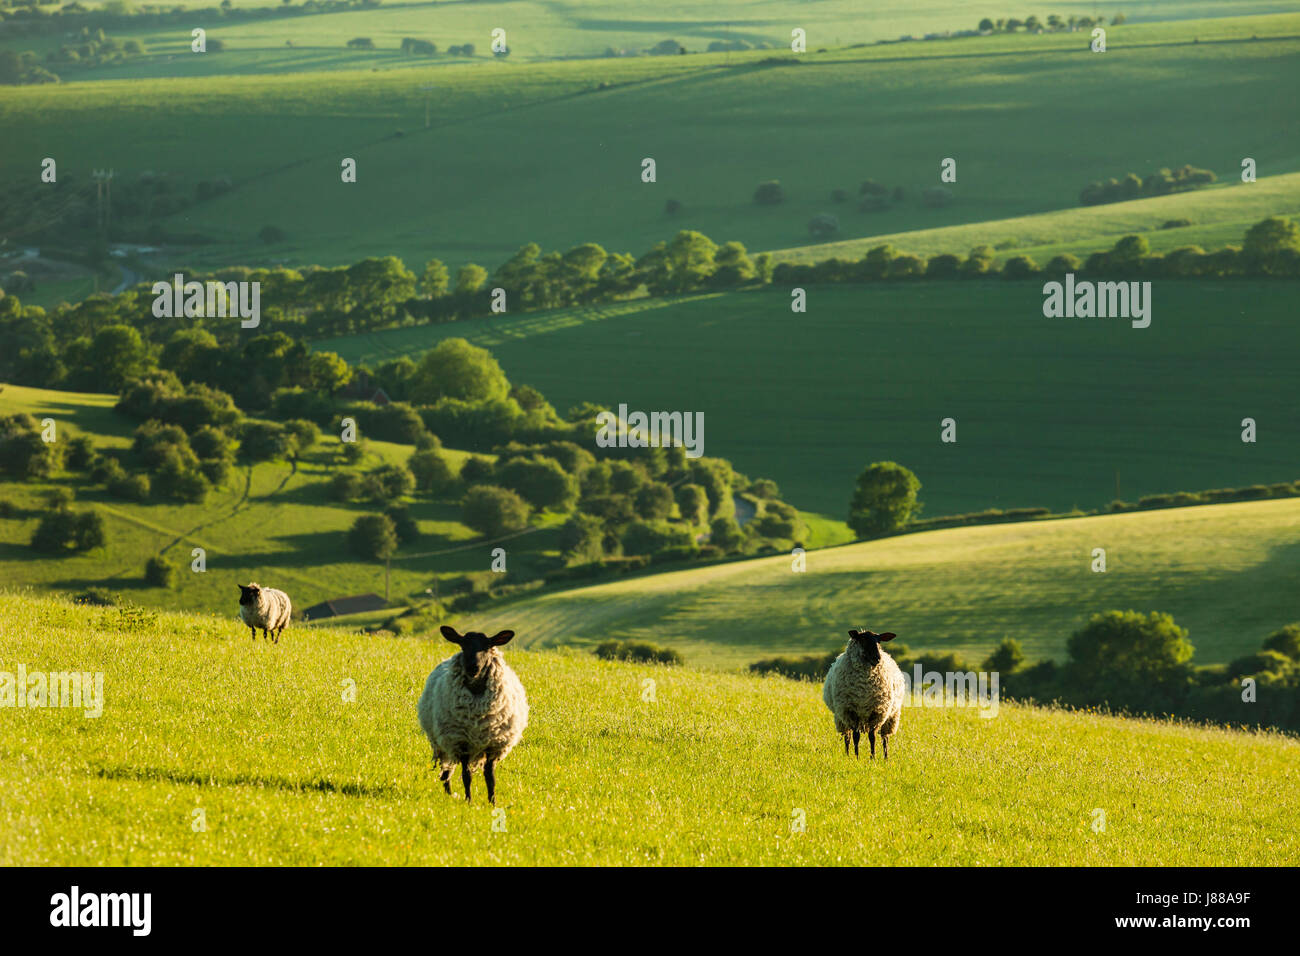 Sheep grazing in South Downs National Park on a spring afternoon, East Sussex, England. Stock Photo